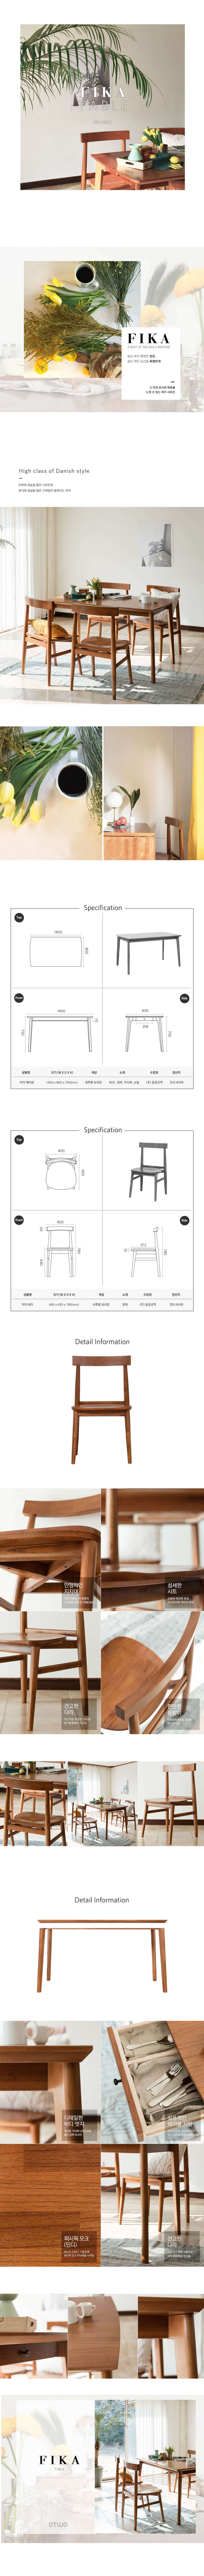 Fika_Swedish_4_Seater_Dining_Set_Table_and_4_Chairs_specs_by_born_in_colour